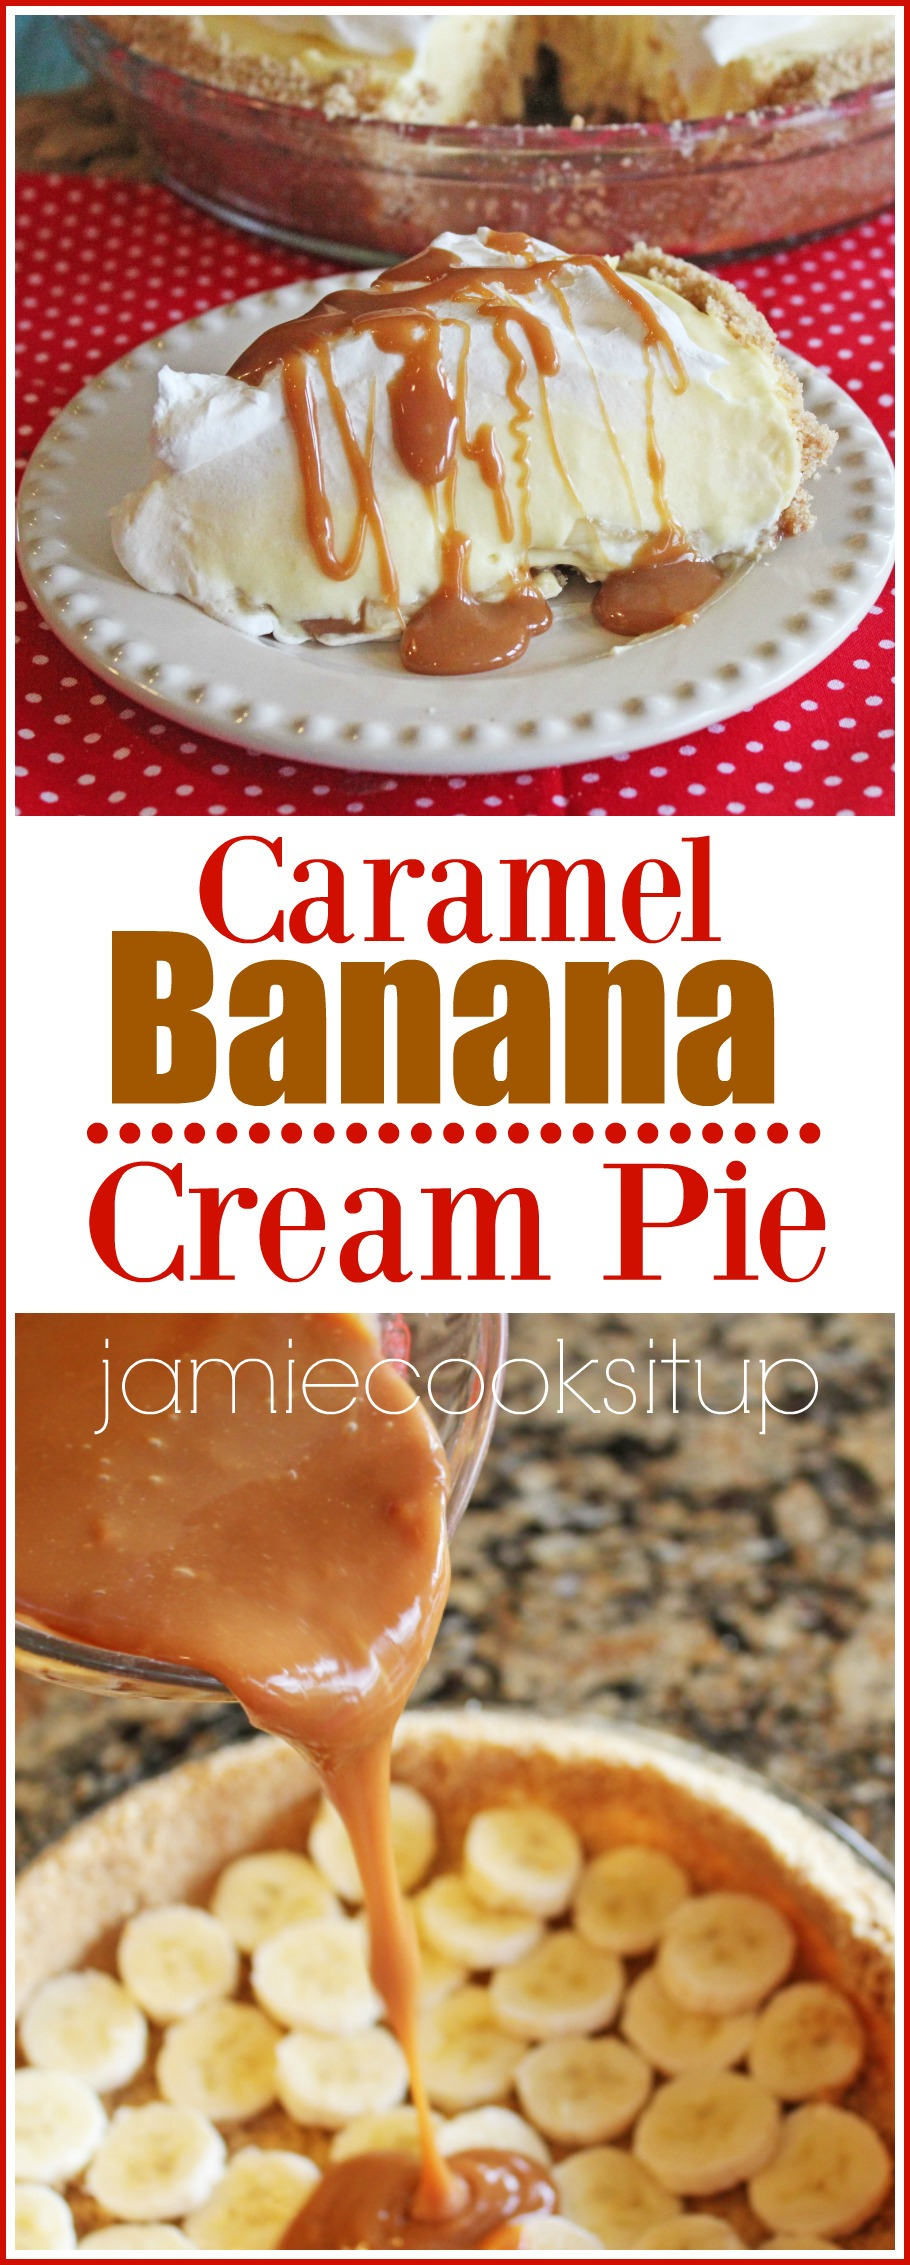 caramel-banana-cream-pie-from-jamie-cooks-it-up